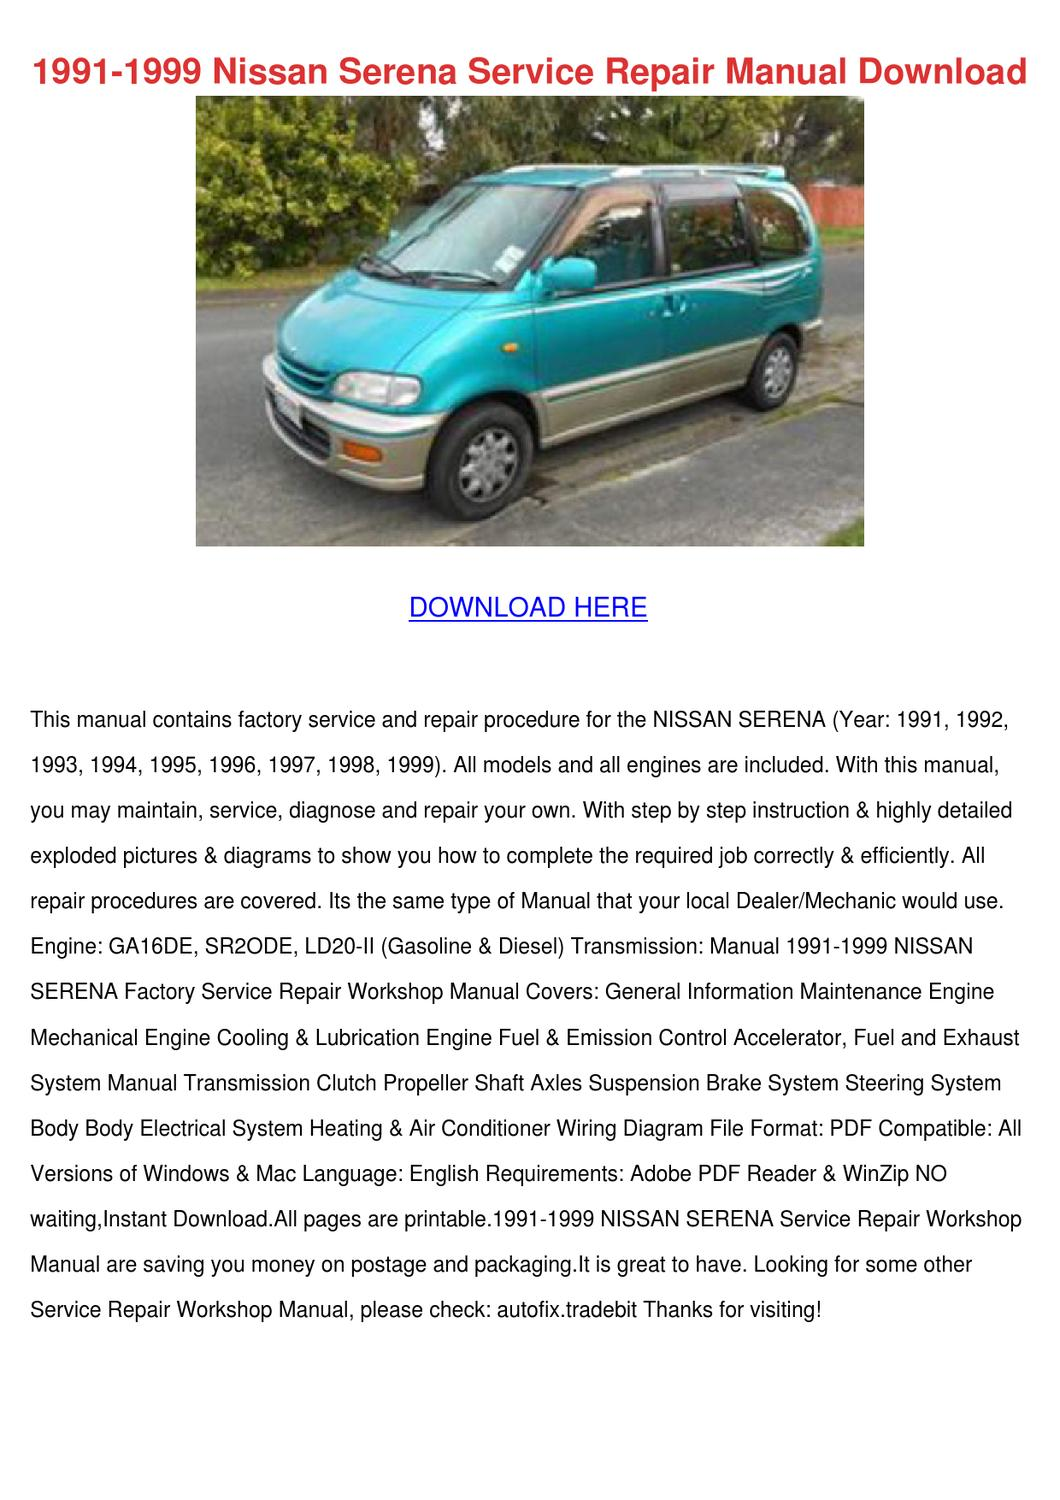 1991 1999 Nissan Serena Service Repair Manual by SuzetteSeymore ...